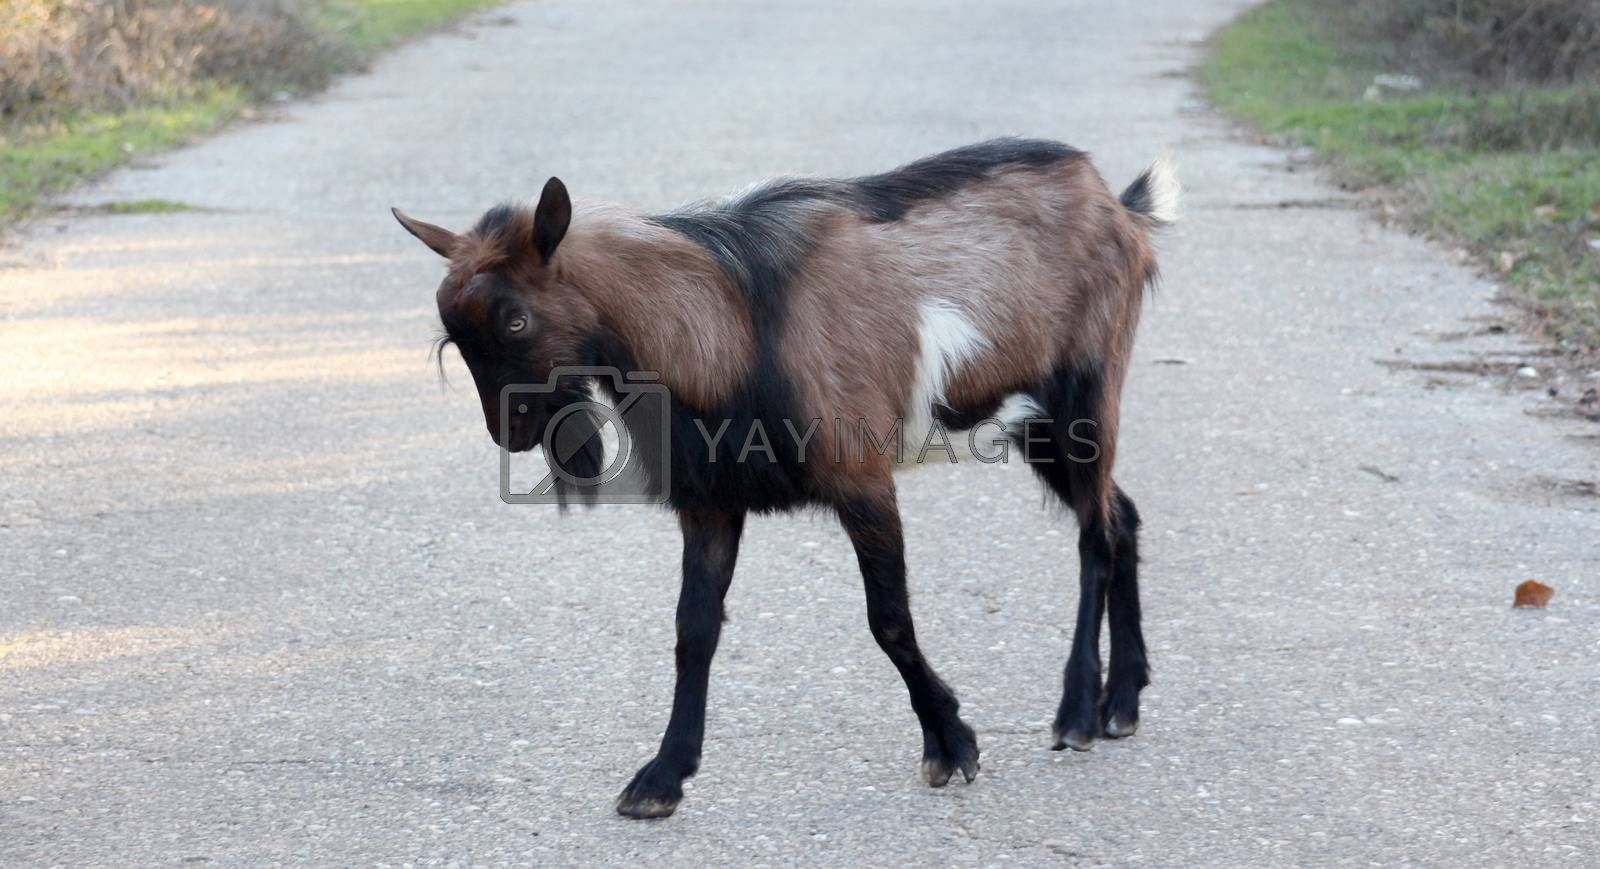 picture of a angry goat on an asphalt road